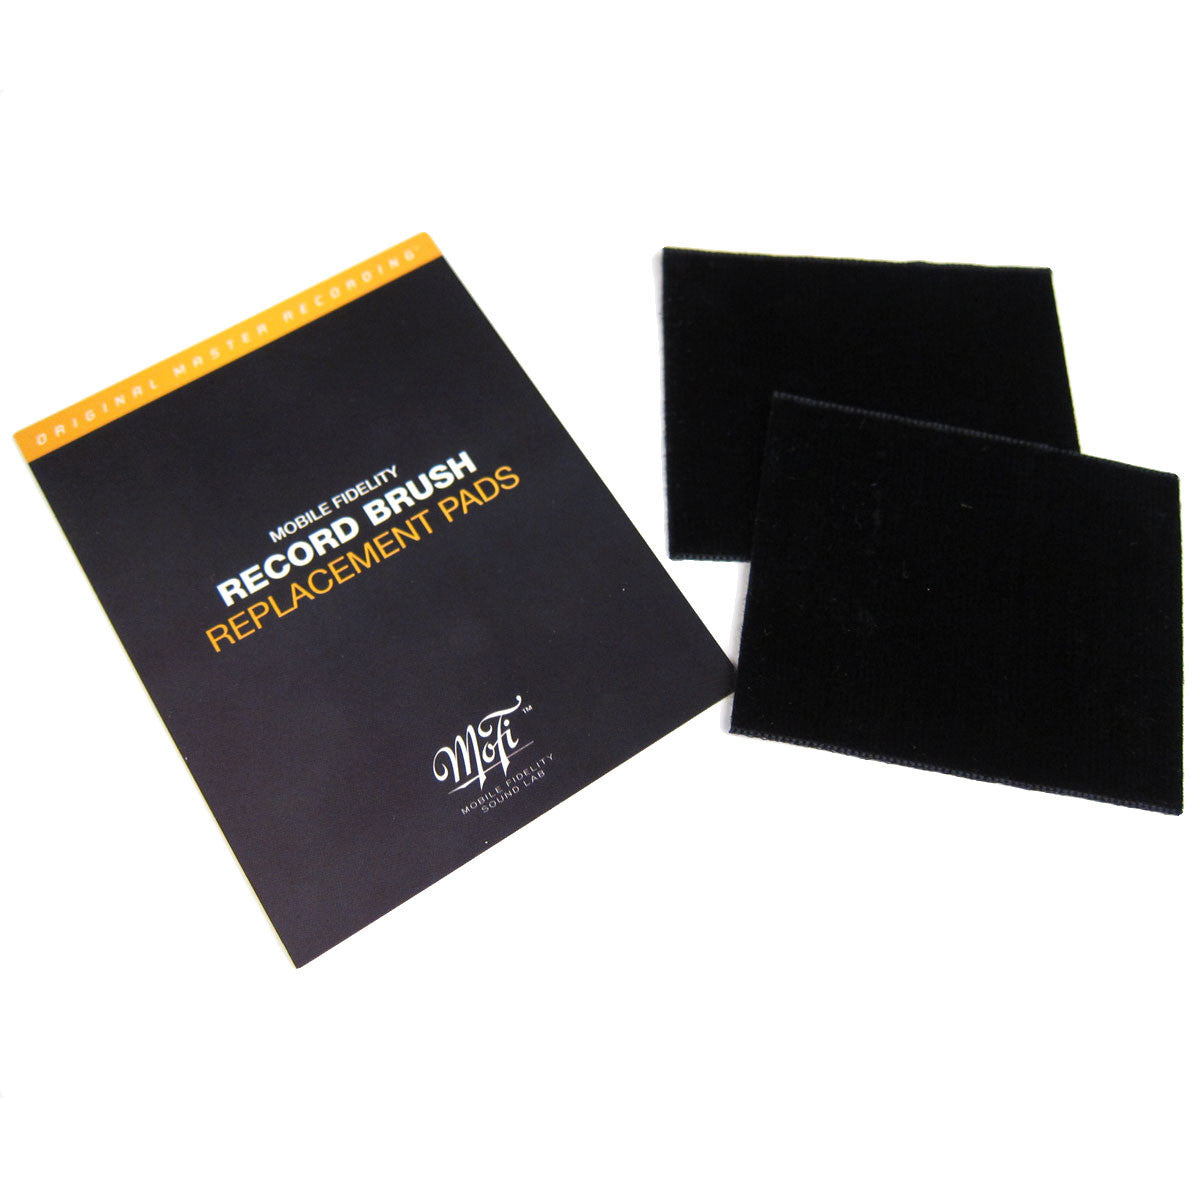 Mobile Fidelity: Replacement Record Brush Pads - 2 Units package